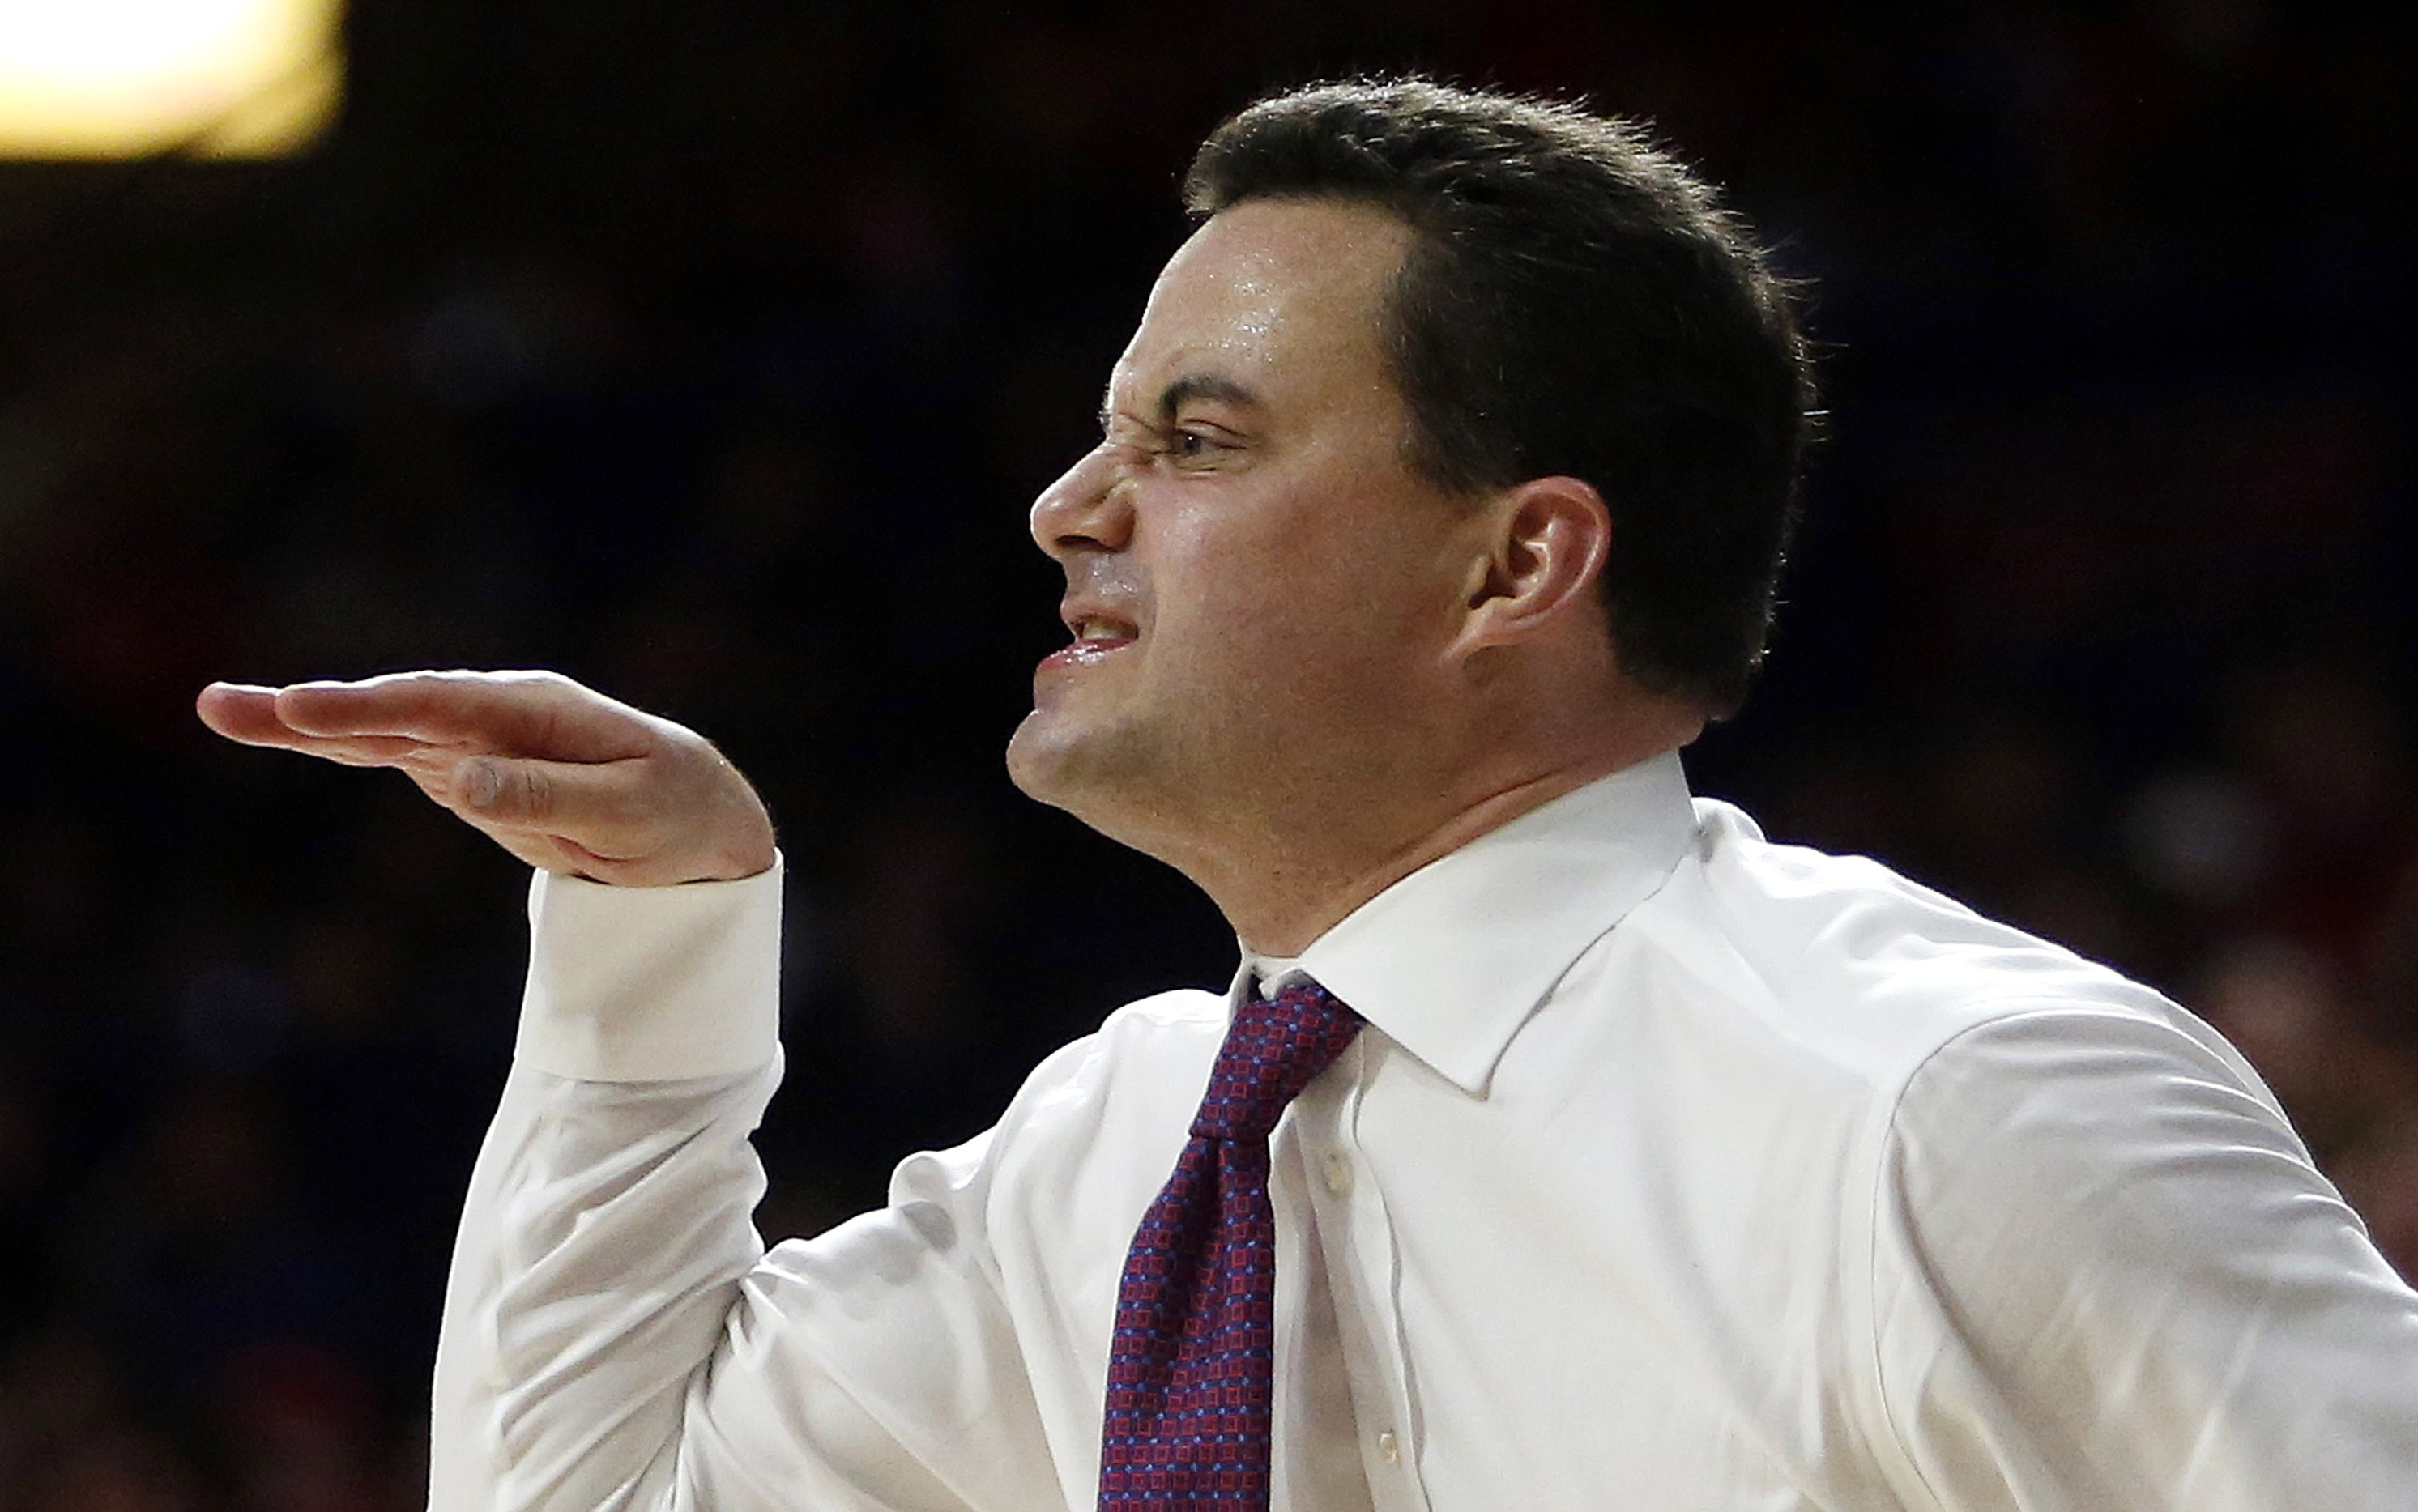 Arizona coach Sean Miller reacts to a foul call during the first half of Arizona's NCAA college basketball game against UCLA, Friday, Feb 12, 2016, in Tucson, Ariz. (AP Photo/Rick Scuteri)